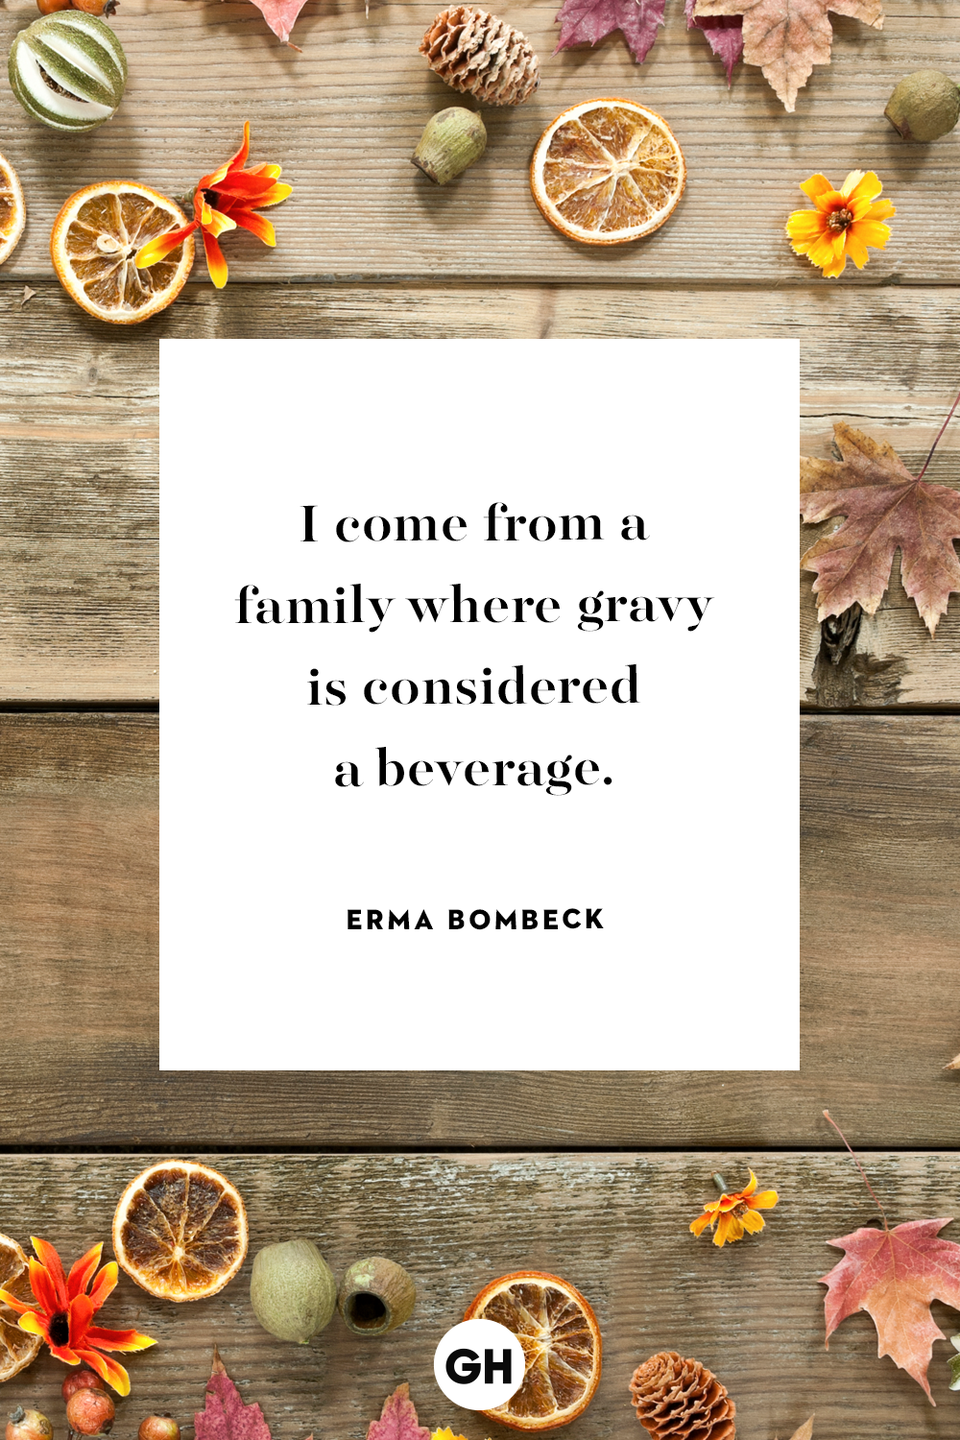 <p>I come from a family where gravy is considered a beverage.</p>